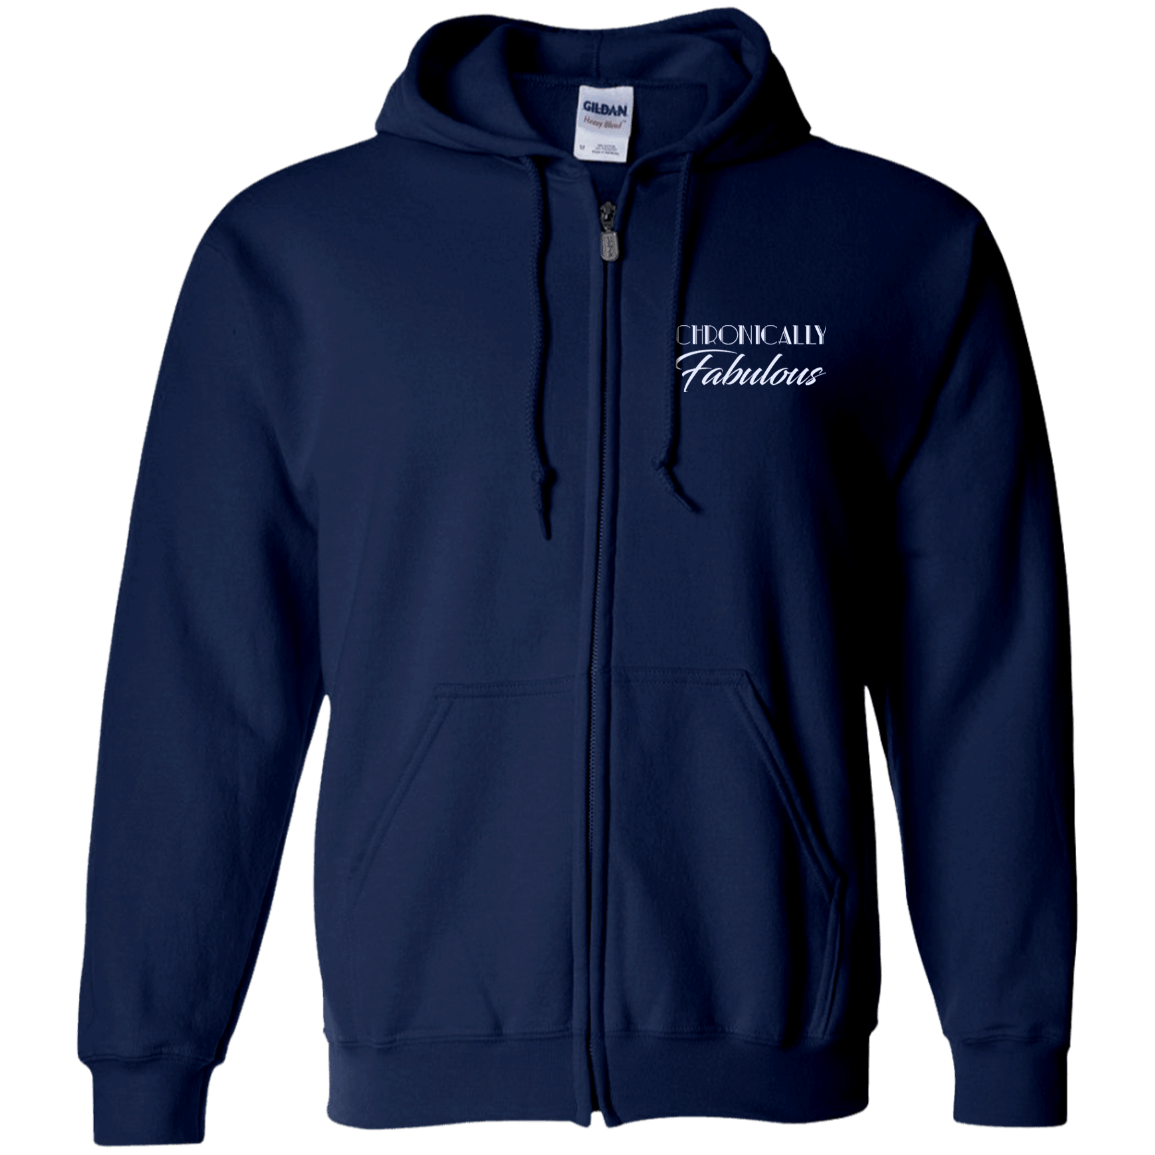 Chronically Fabulous Zip Up Hooded Sweatshirt - The Unchargeables